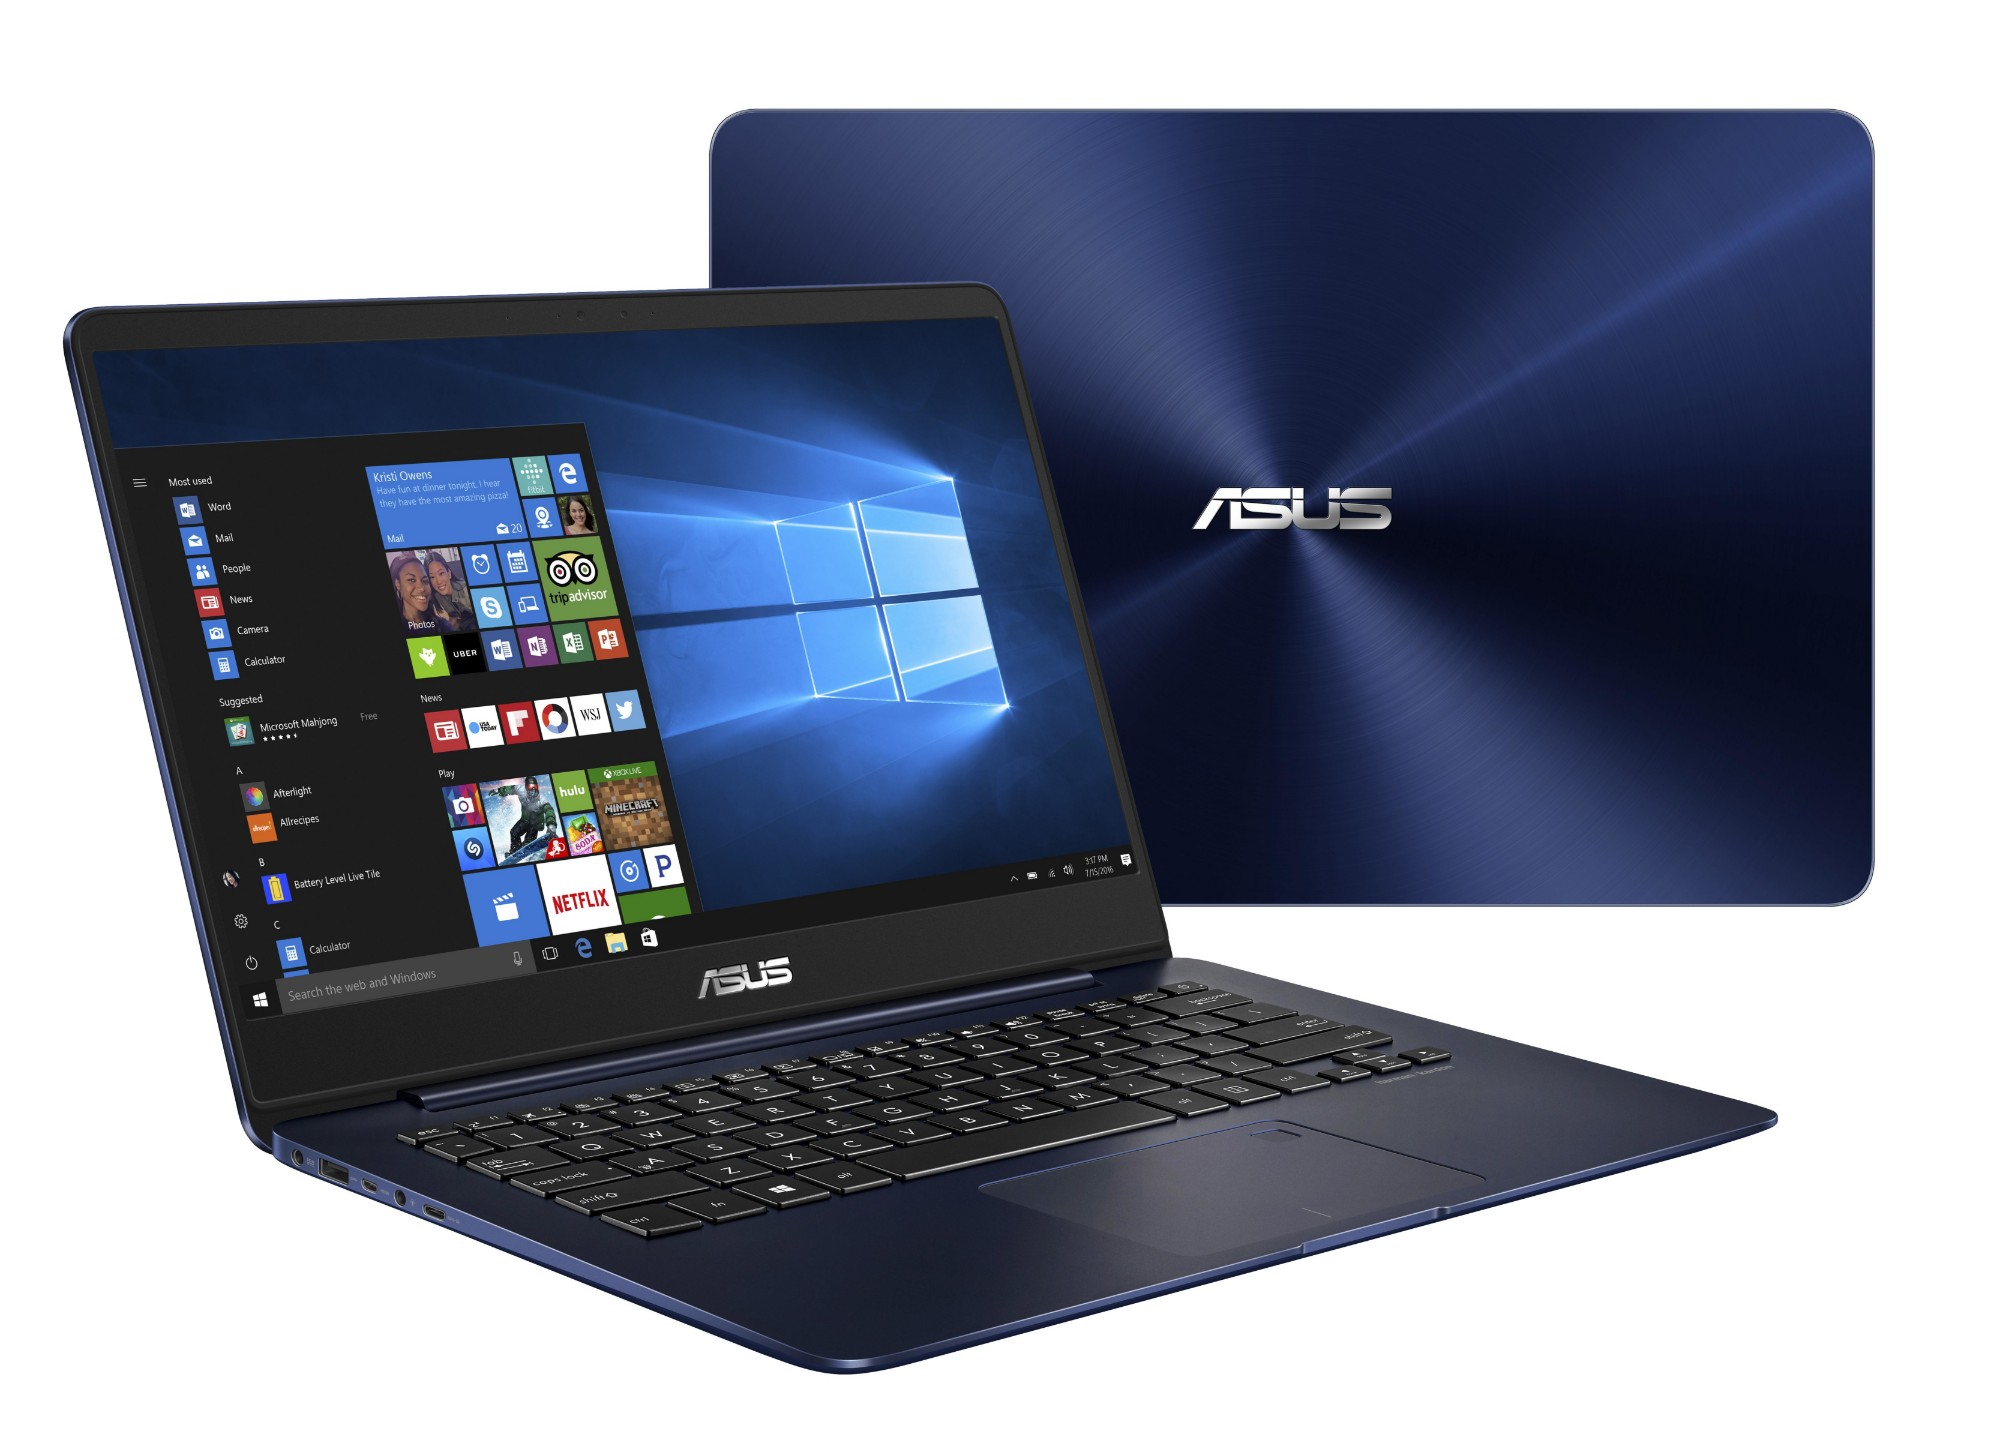 Asus M50Vn Notebook Matrix Storage Management Drivers Windows 7